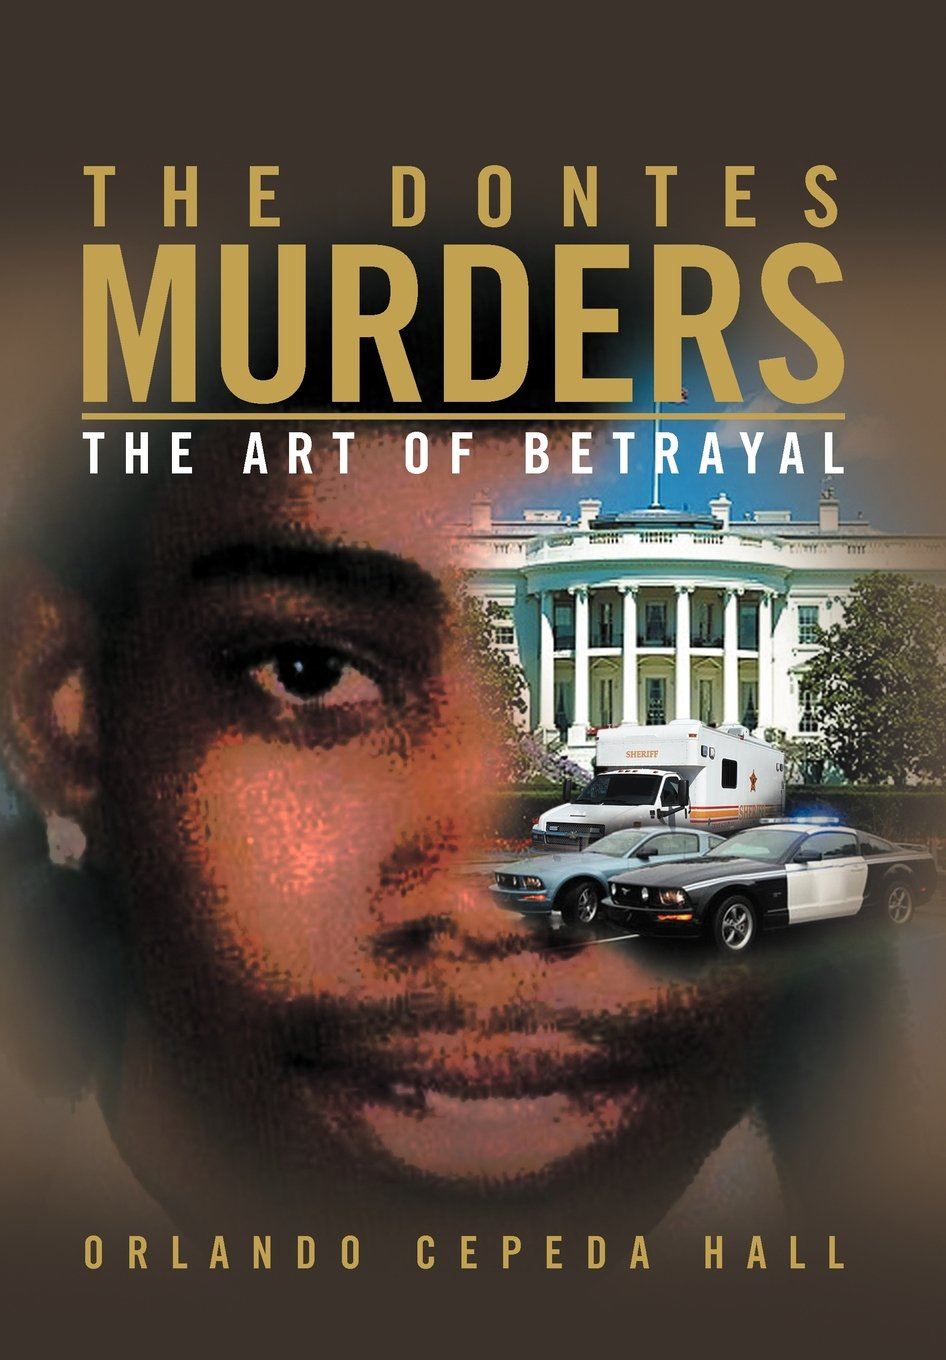 Download The Dontes Murders: The Art of Betrayal PDF